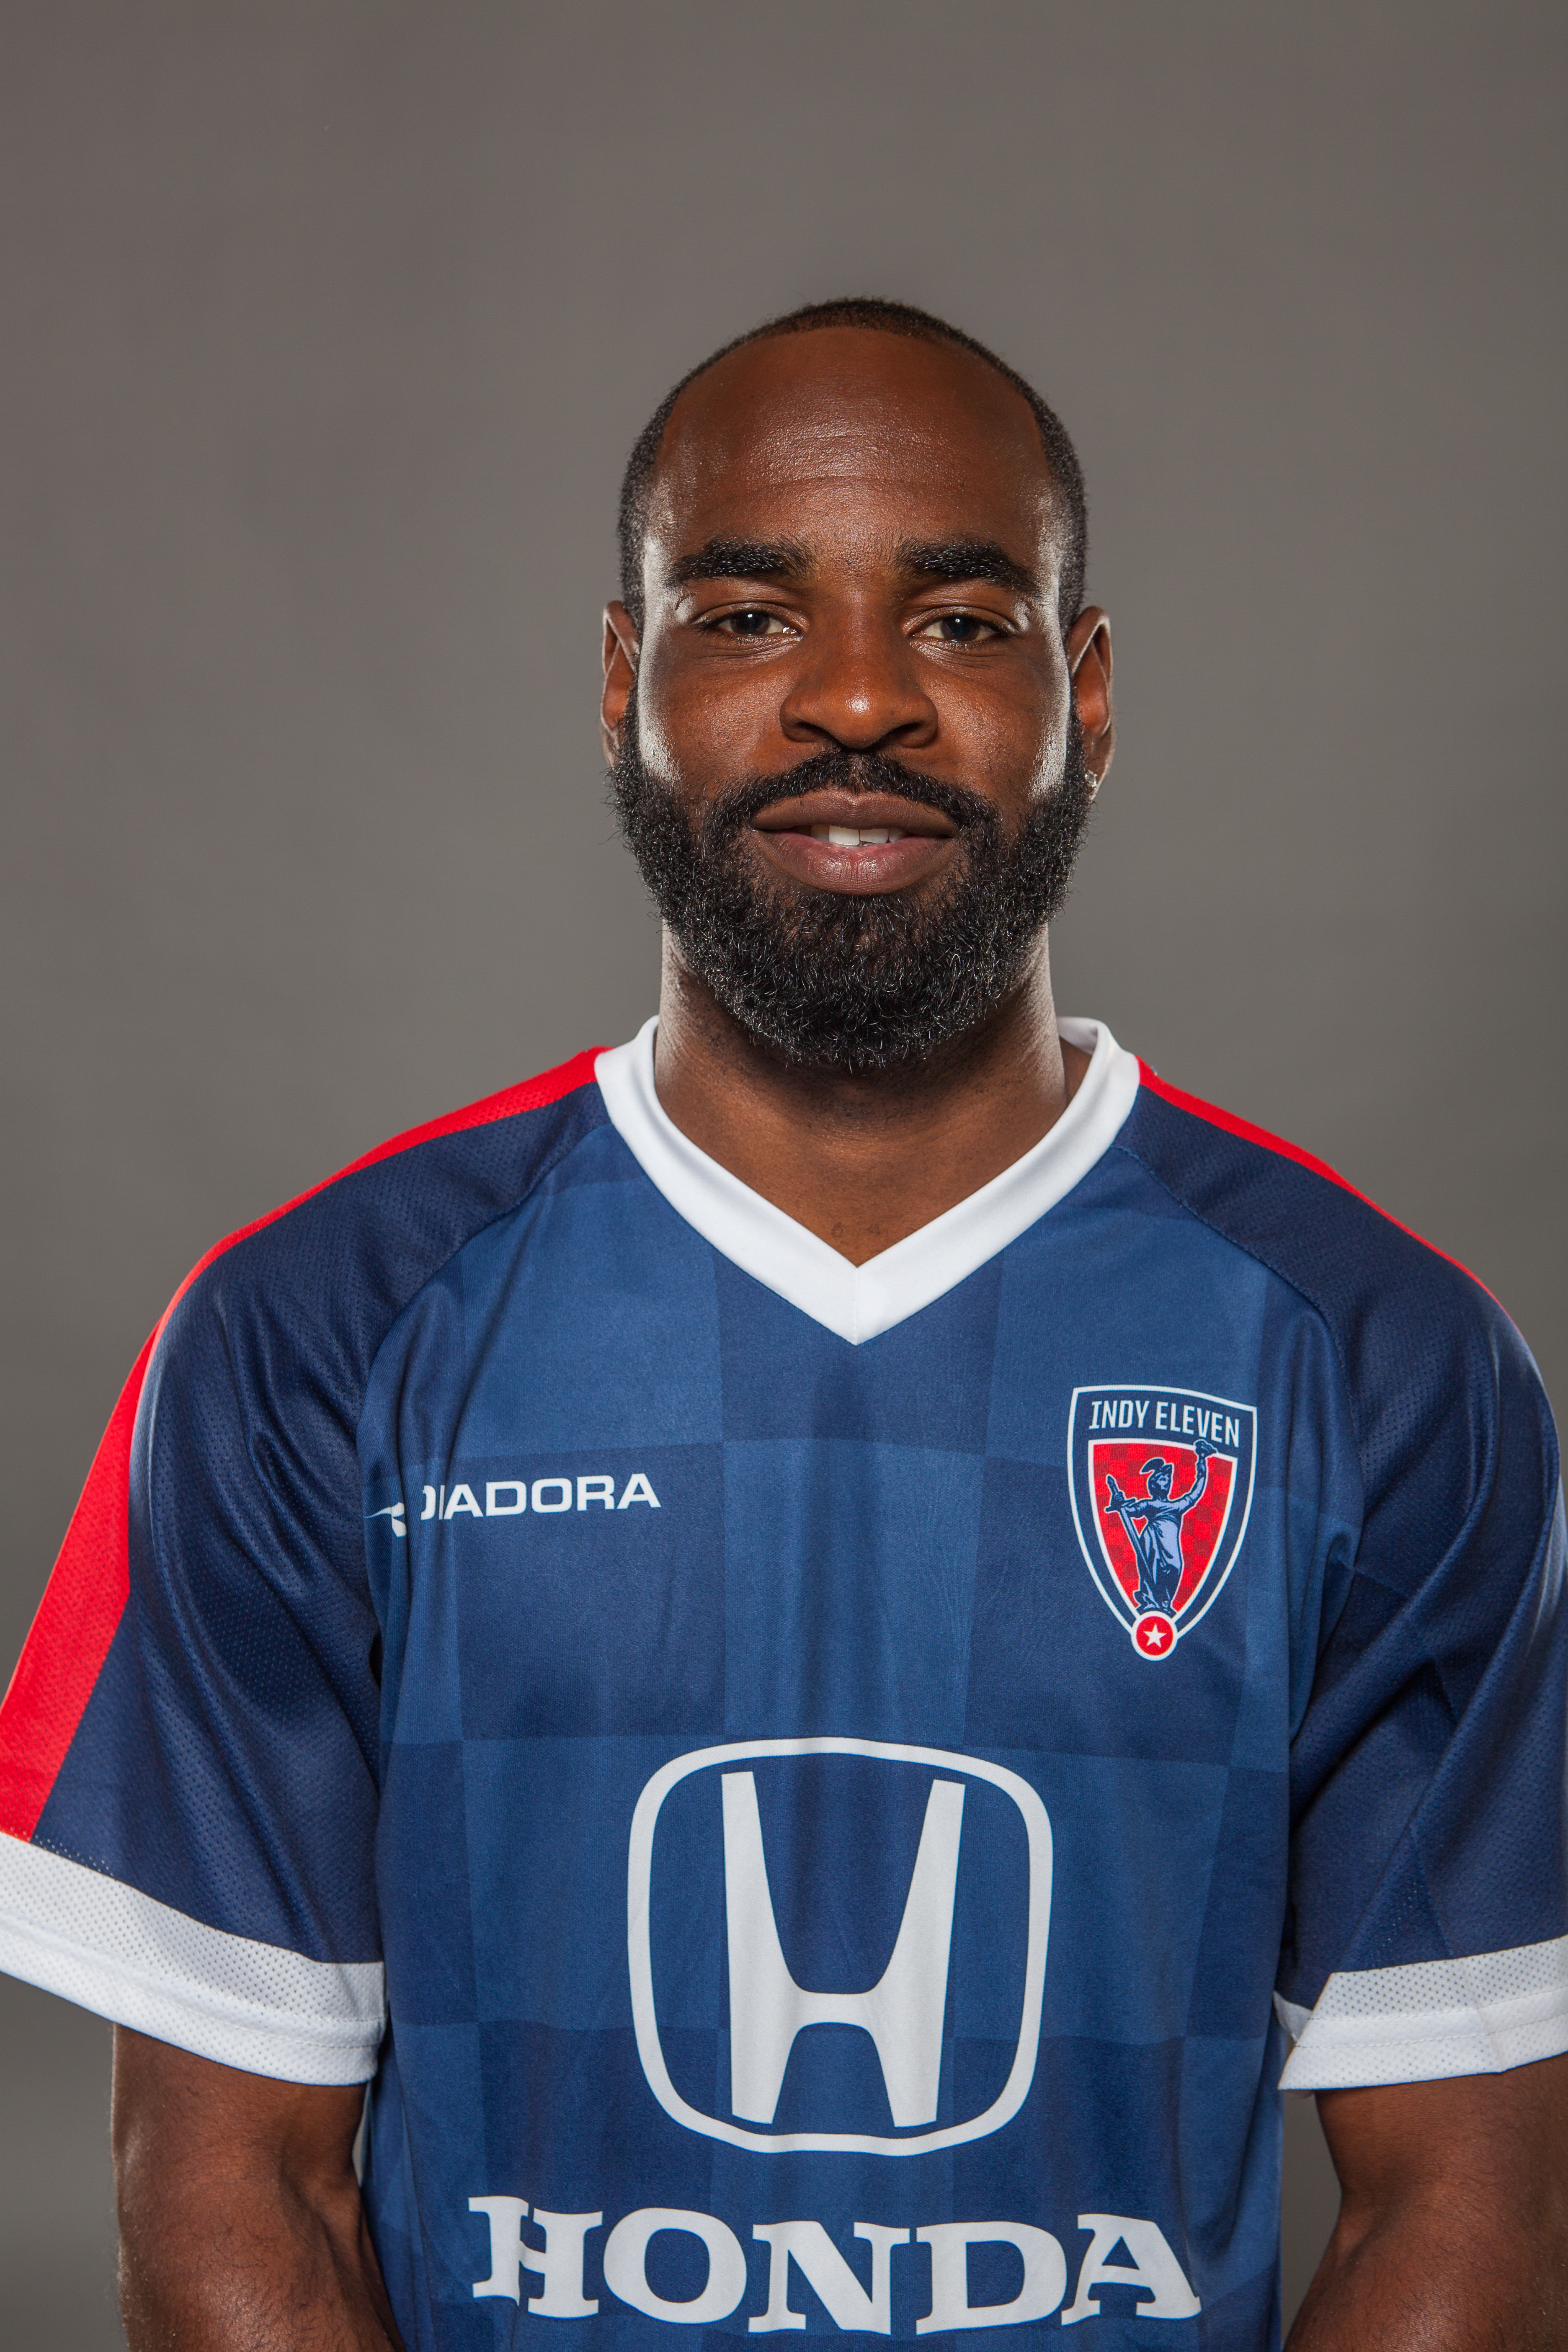 Turkish Airlines and Honda to sponsor Indy Eleven's kits